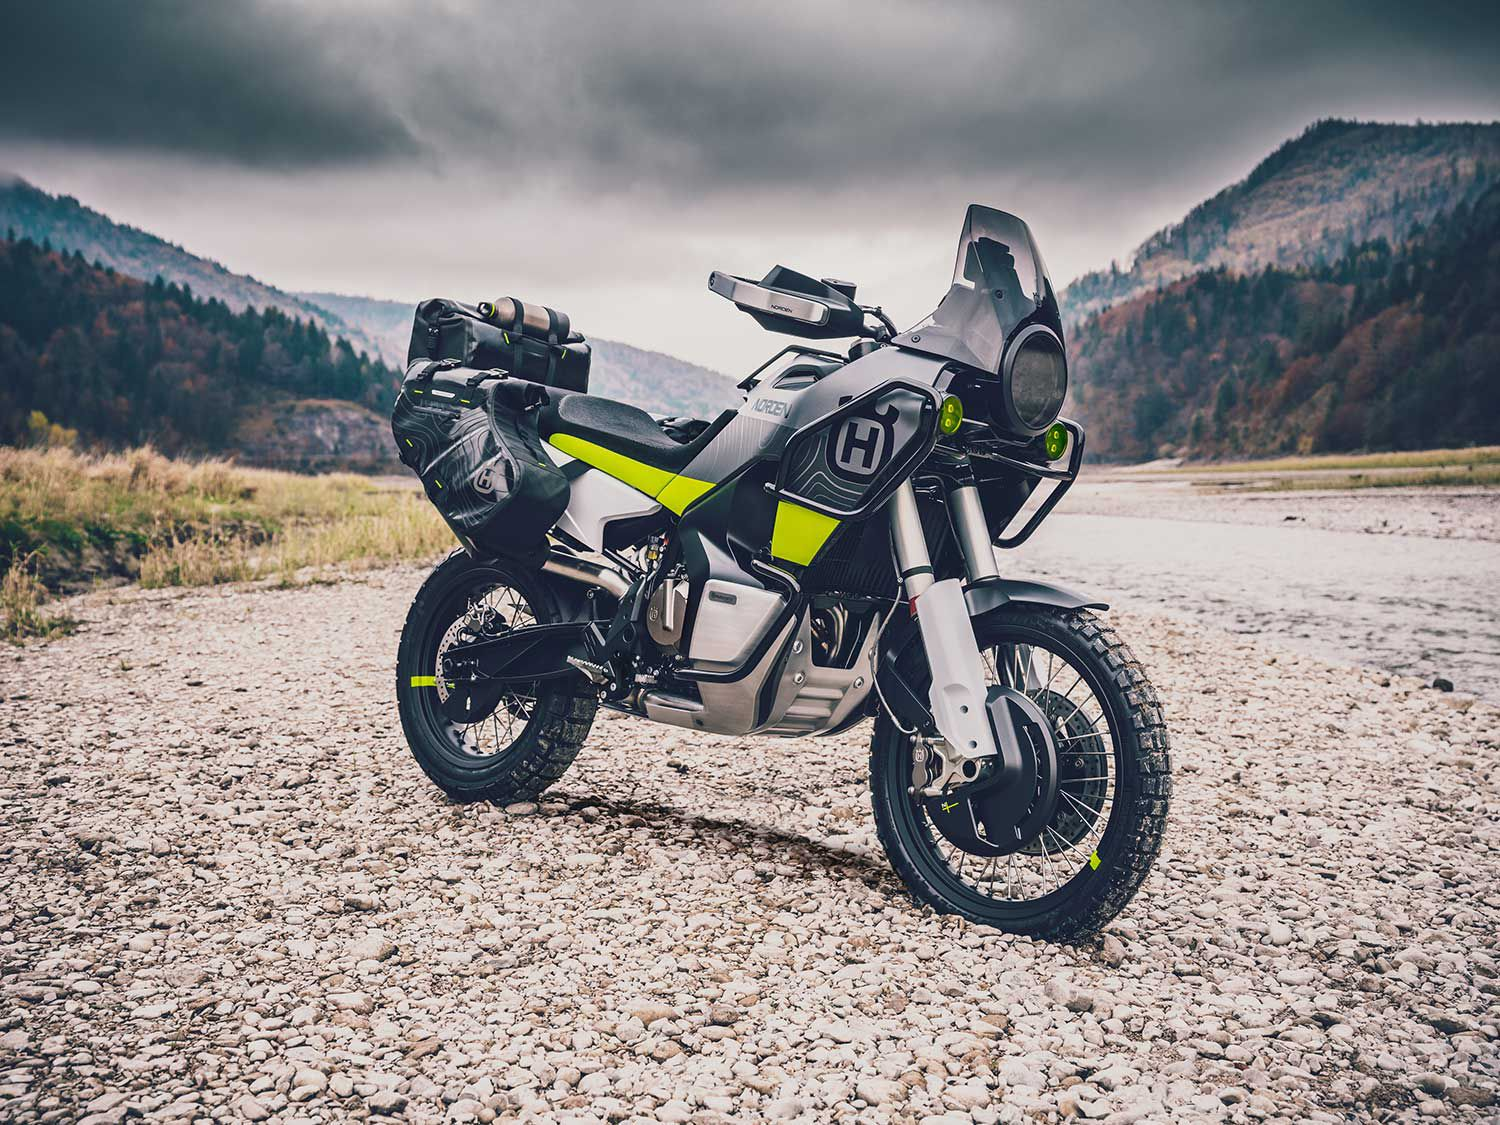 This looks like a fully capable adventure machine.